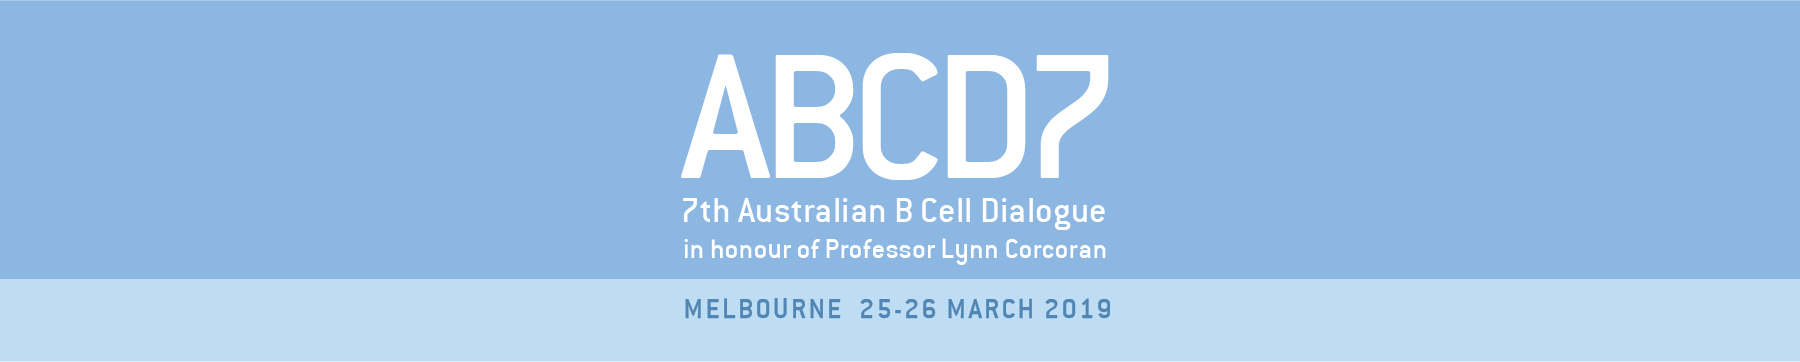 ABCD7 Conference promotion